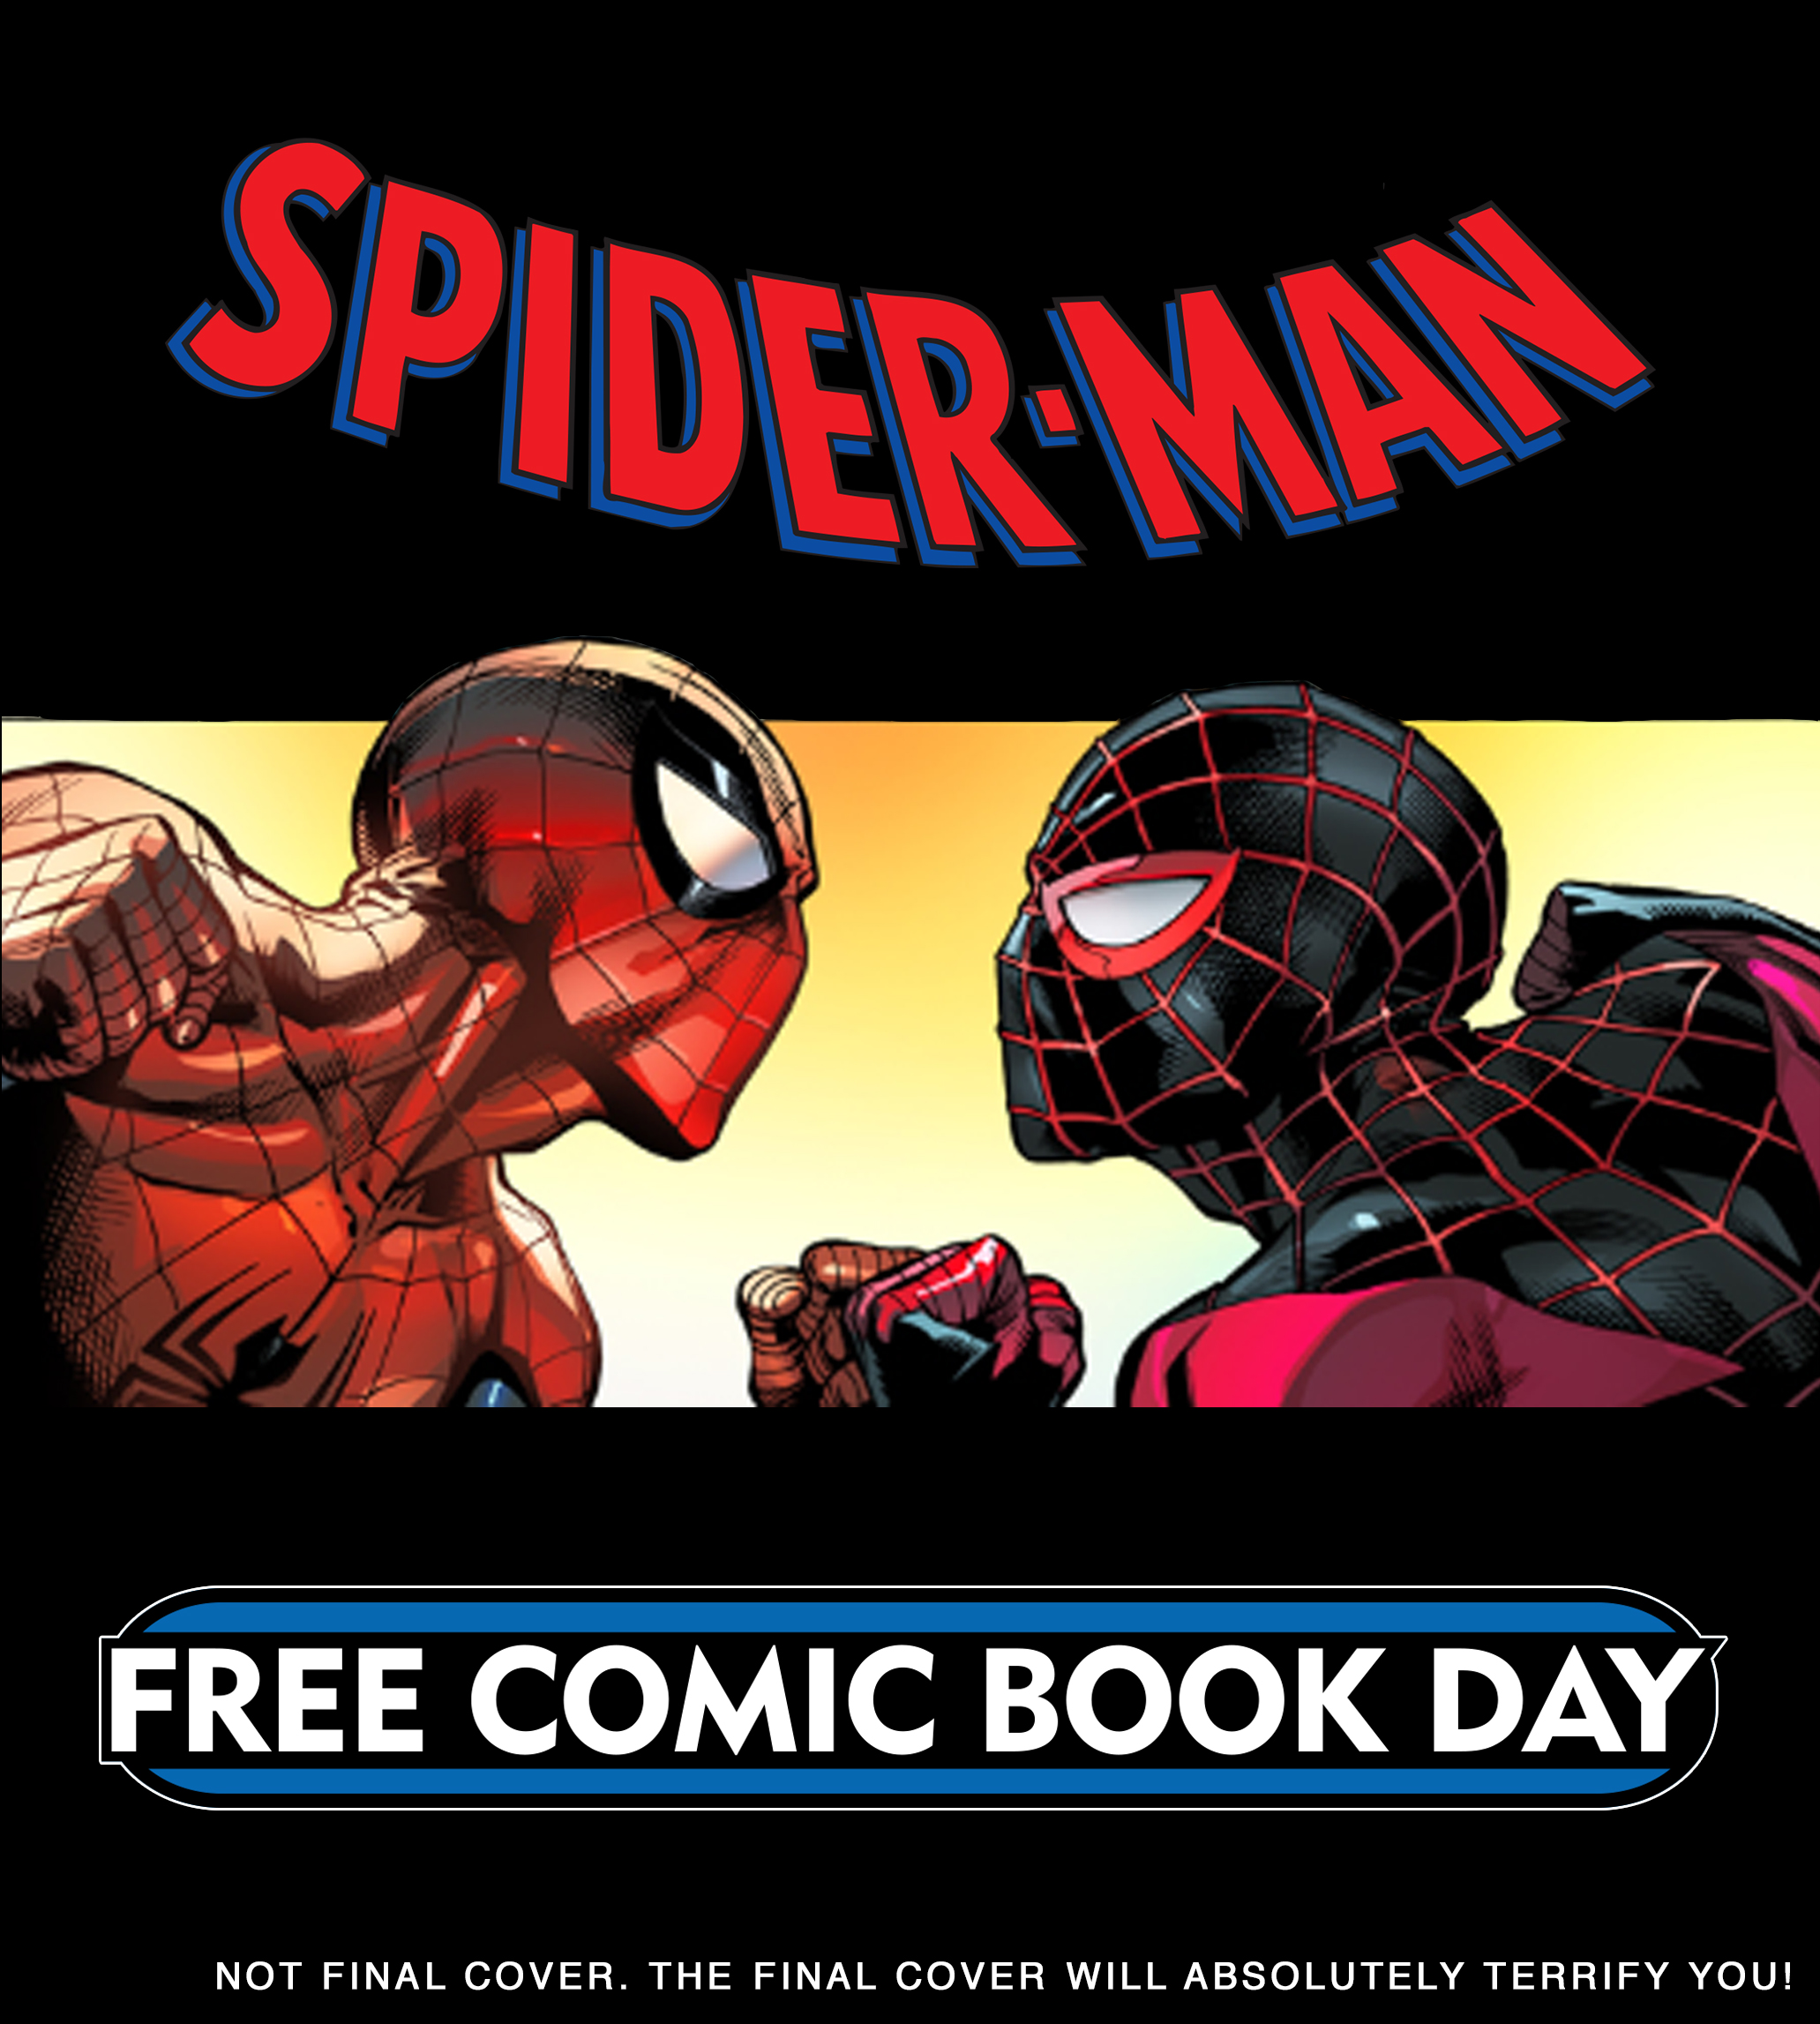 Marvel Announces FCBD 2019 Spider-Man/Venom #1 - Alpha Comics